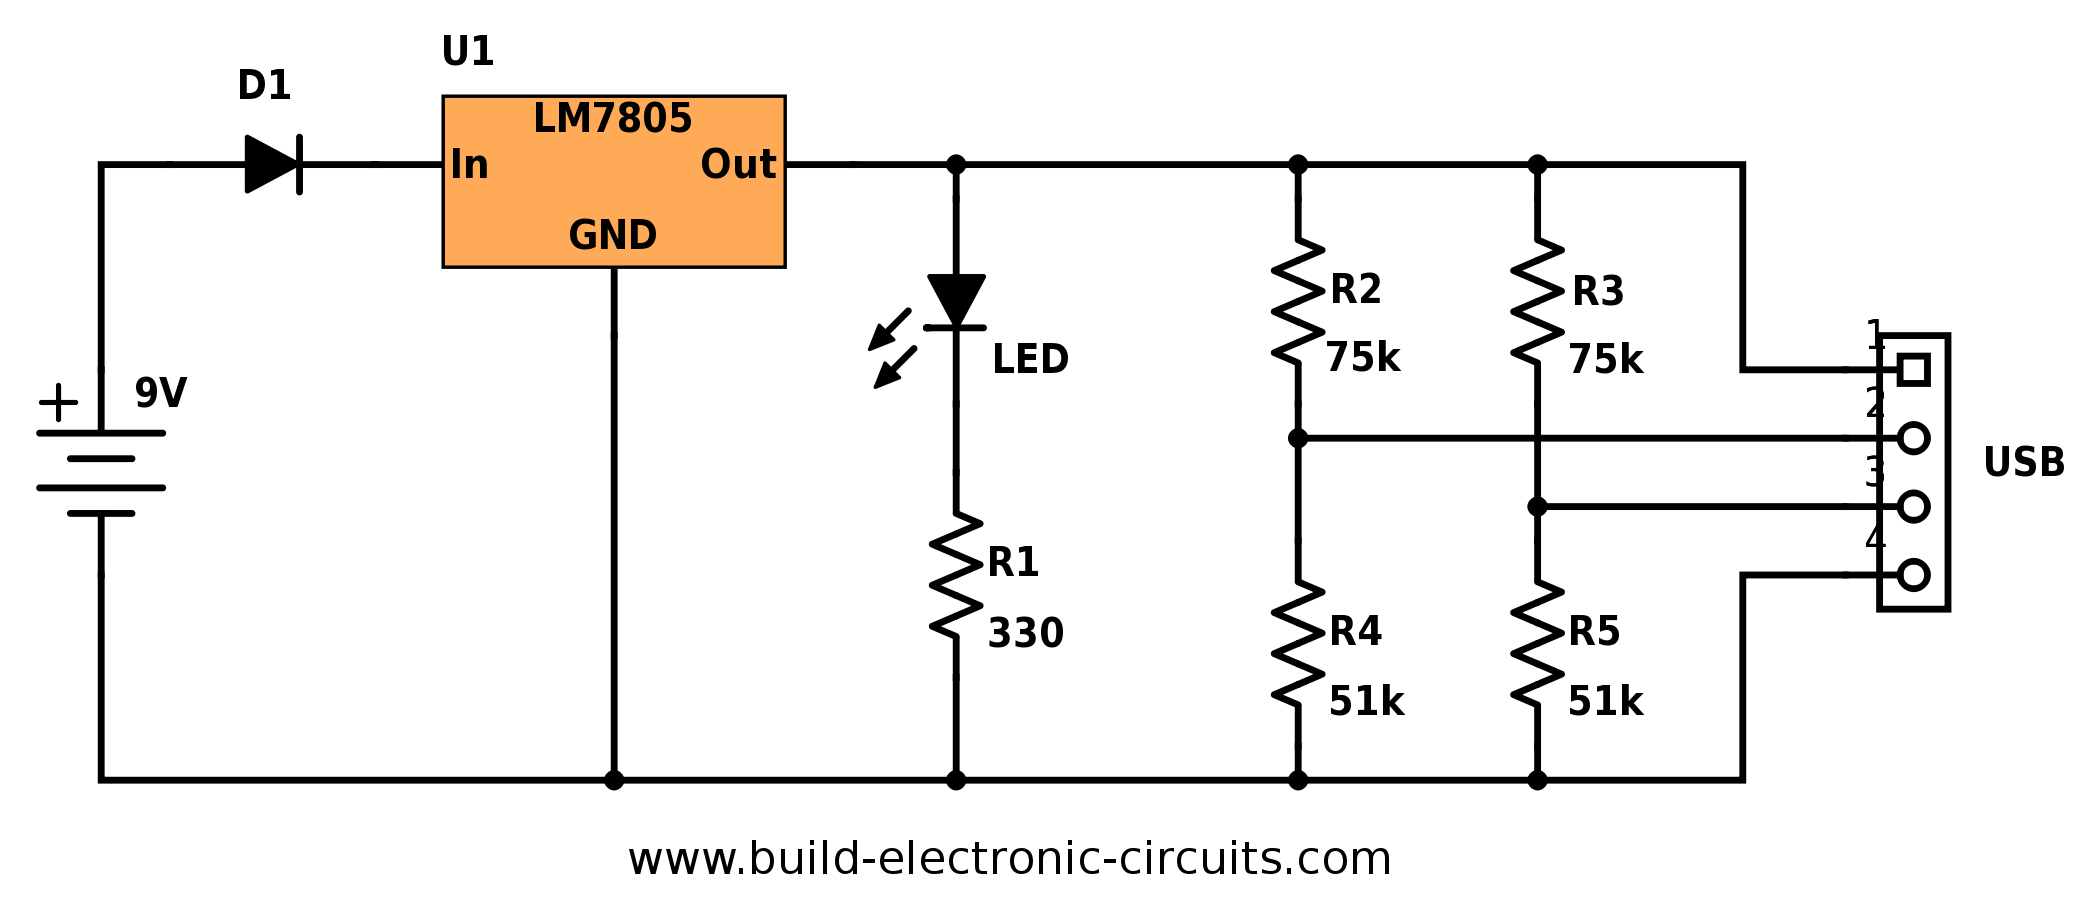 Portable Usb Charger Circuit - Build Electronic Circuits - 12 Volt Usb Charging Port Wiring Diagram